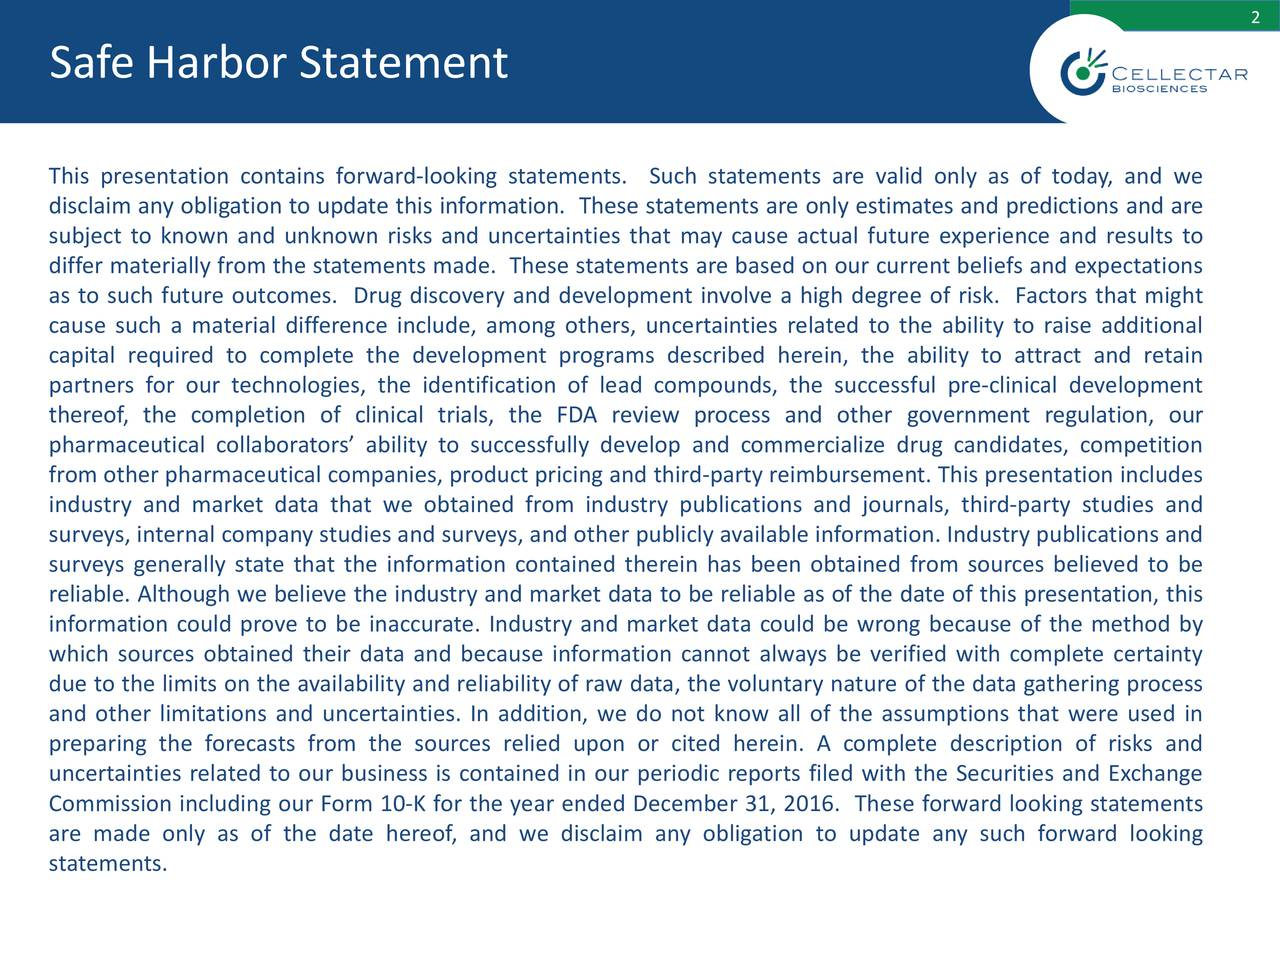 Safe Harbor Statement This presentation contains forward-looking statements. Such statements are valid only as of today, and we disclaim any obligation to update this information. These statements are only estimates and predictions and are subject to known and unknown risks and uncertainties that may cause actual future experience and results to differ materially from the statements made. These statements are based on our current beliefs and expectations as to such future outcomes. Drug discovery and development involve a high degree of risk. Factors that might cause such a material difference include, among others, uncertainties related to the ability to raise additional capital required to complete the development programs described herein, the ability to attract and retain partners for our technologies, the identification of lead compounds, the successful pre-clinical development thereof, the completion of clinical trials, the FDA review process and other government regulation, our pharmaceutical collaborators' ability to successfully develop and commercialize drug candidates, competition from other pharmaceutical companies, product pricing and third-party reimbursement. This presentation includes industry and market data that we obtained from industry publications and journals, third‐party studies and surveys, internal company studies and surveys, and other publicly available information. Industry publications and surveys generally state that the information contained therein has been obtained from sources believed to be reliable. Although we believe the industry and market data to be reliable as of the date of this presentation, this information could prove to be inaccurate. Industry and market data could be wrong because of the method by which sources obtained their data and because information cannot always be verified with complete certainty due to the limits on the availability and reliability of raw data, the voluntary nature of the data gathering process 